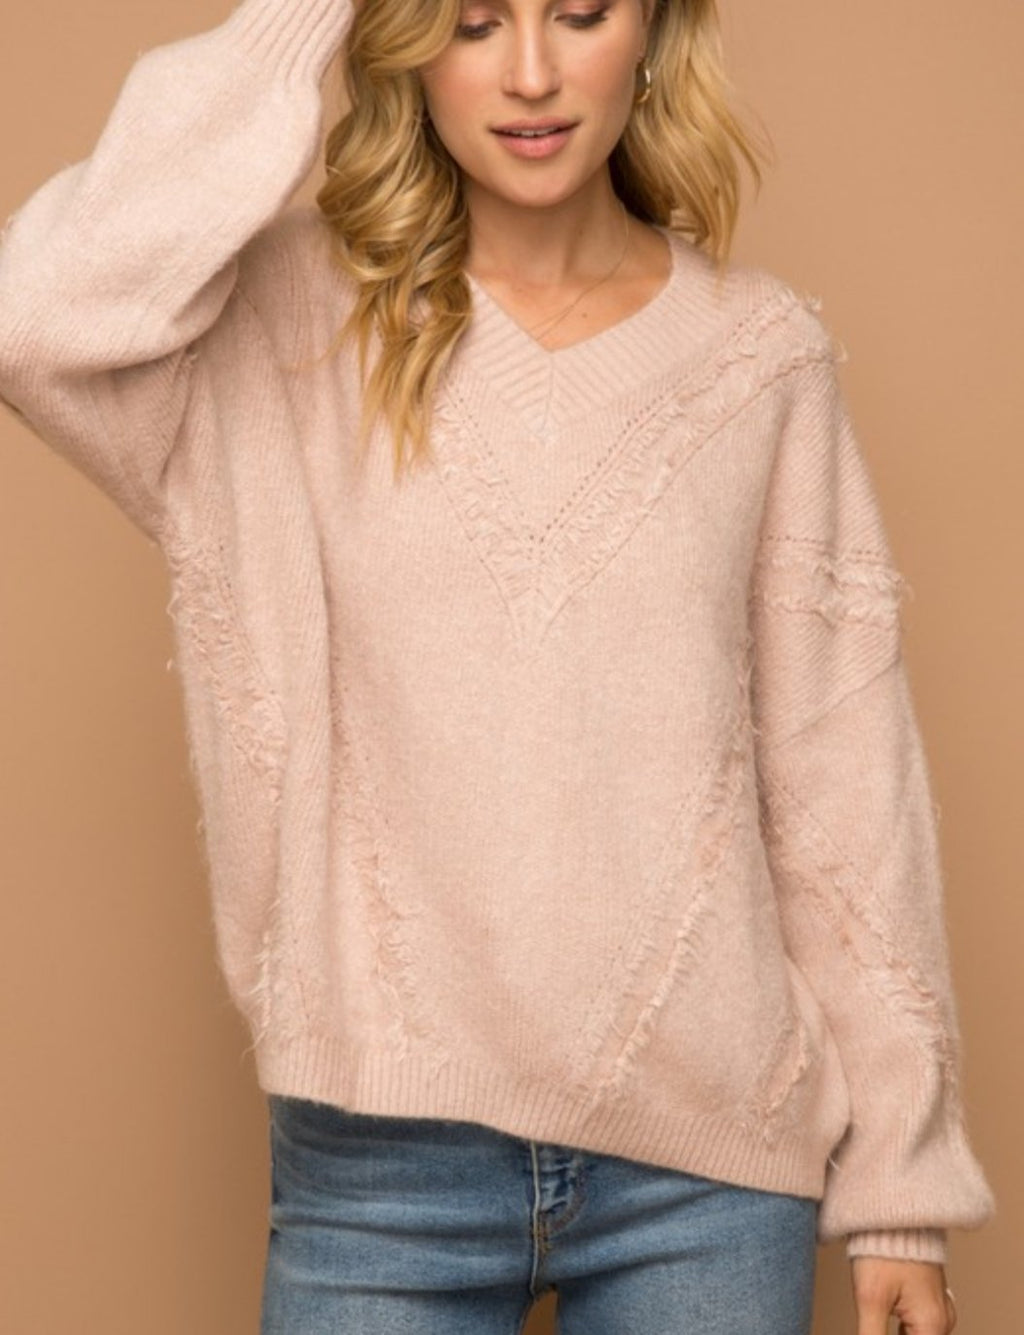 The Fray Pullover Sweater